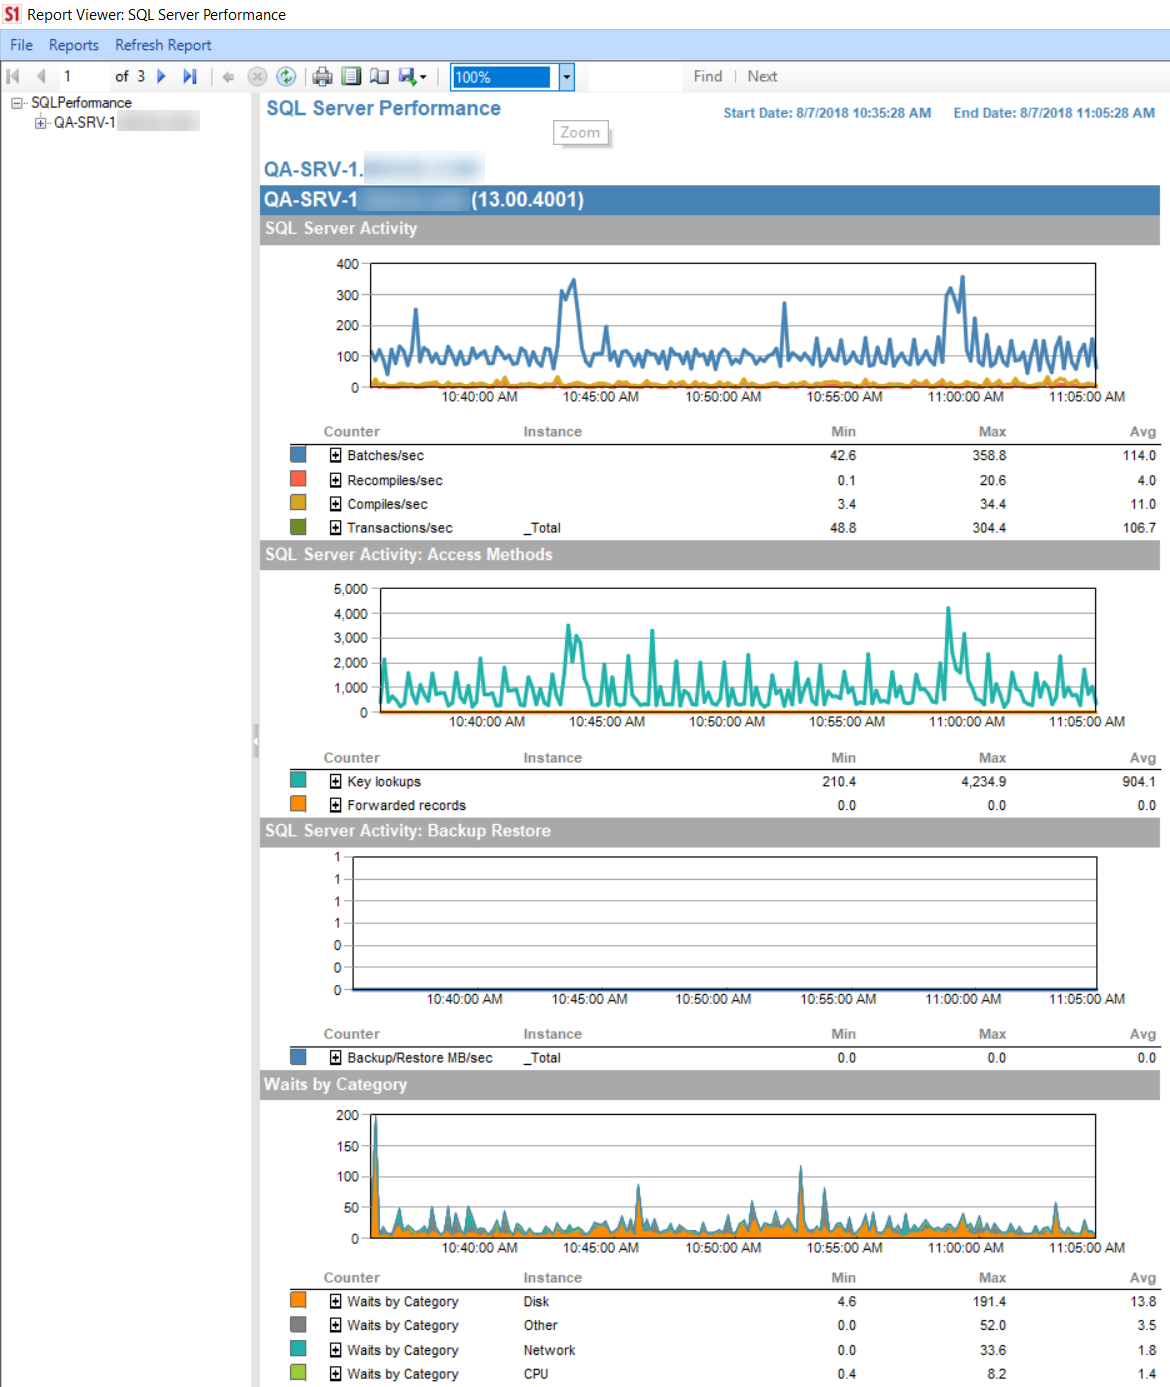 SentryOne SQL Server Performance